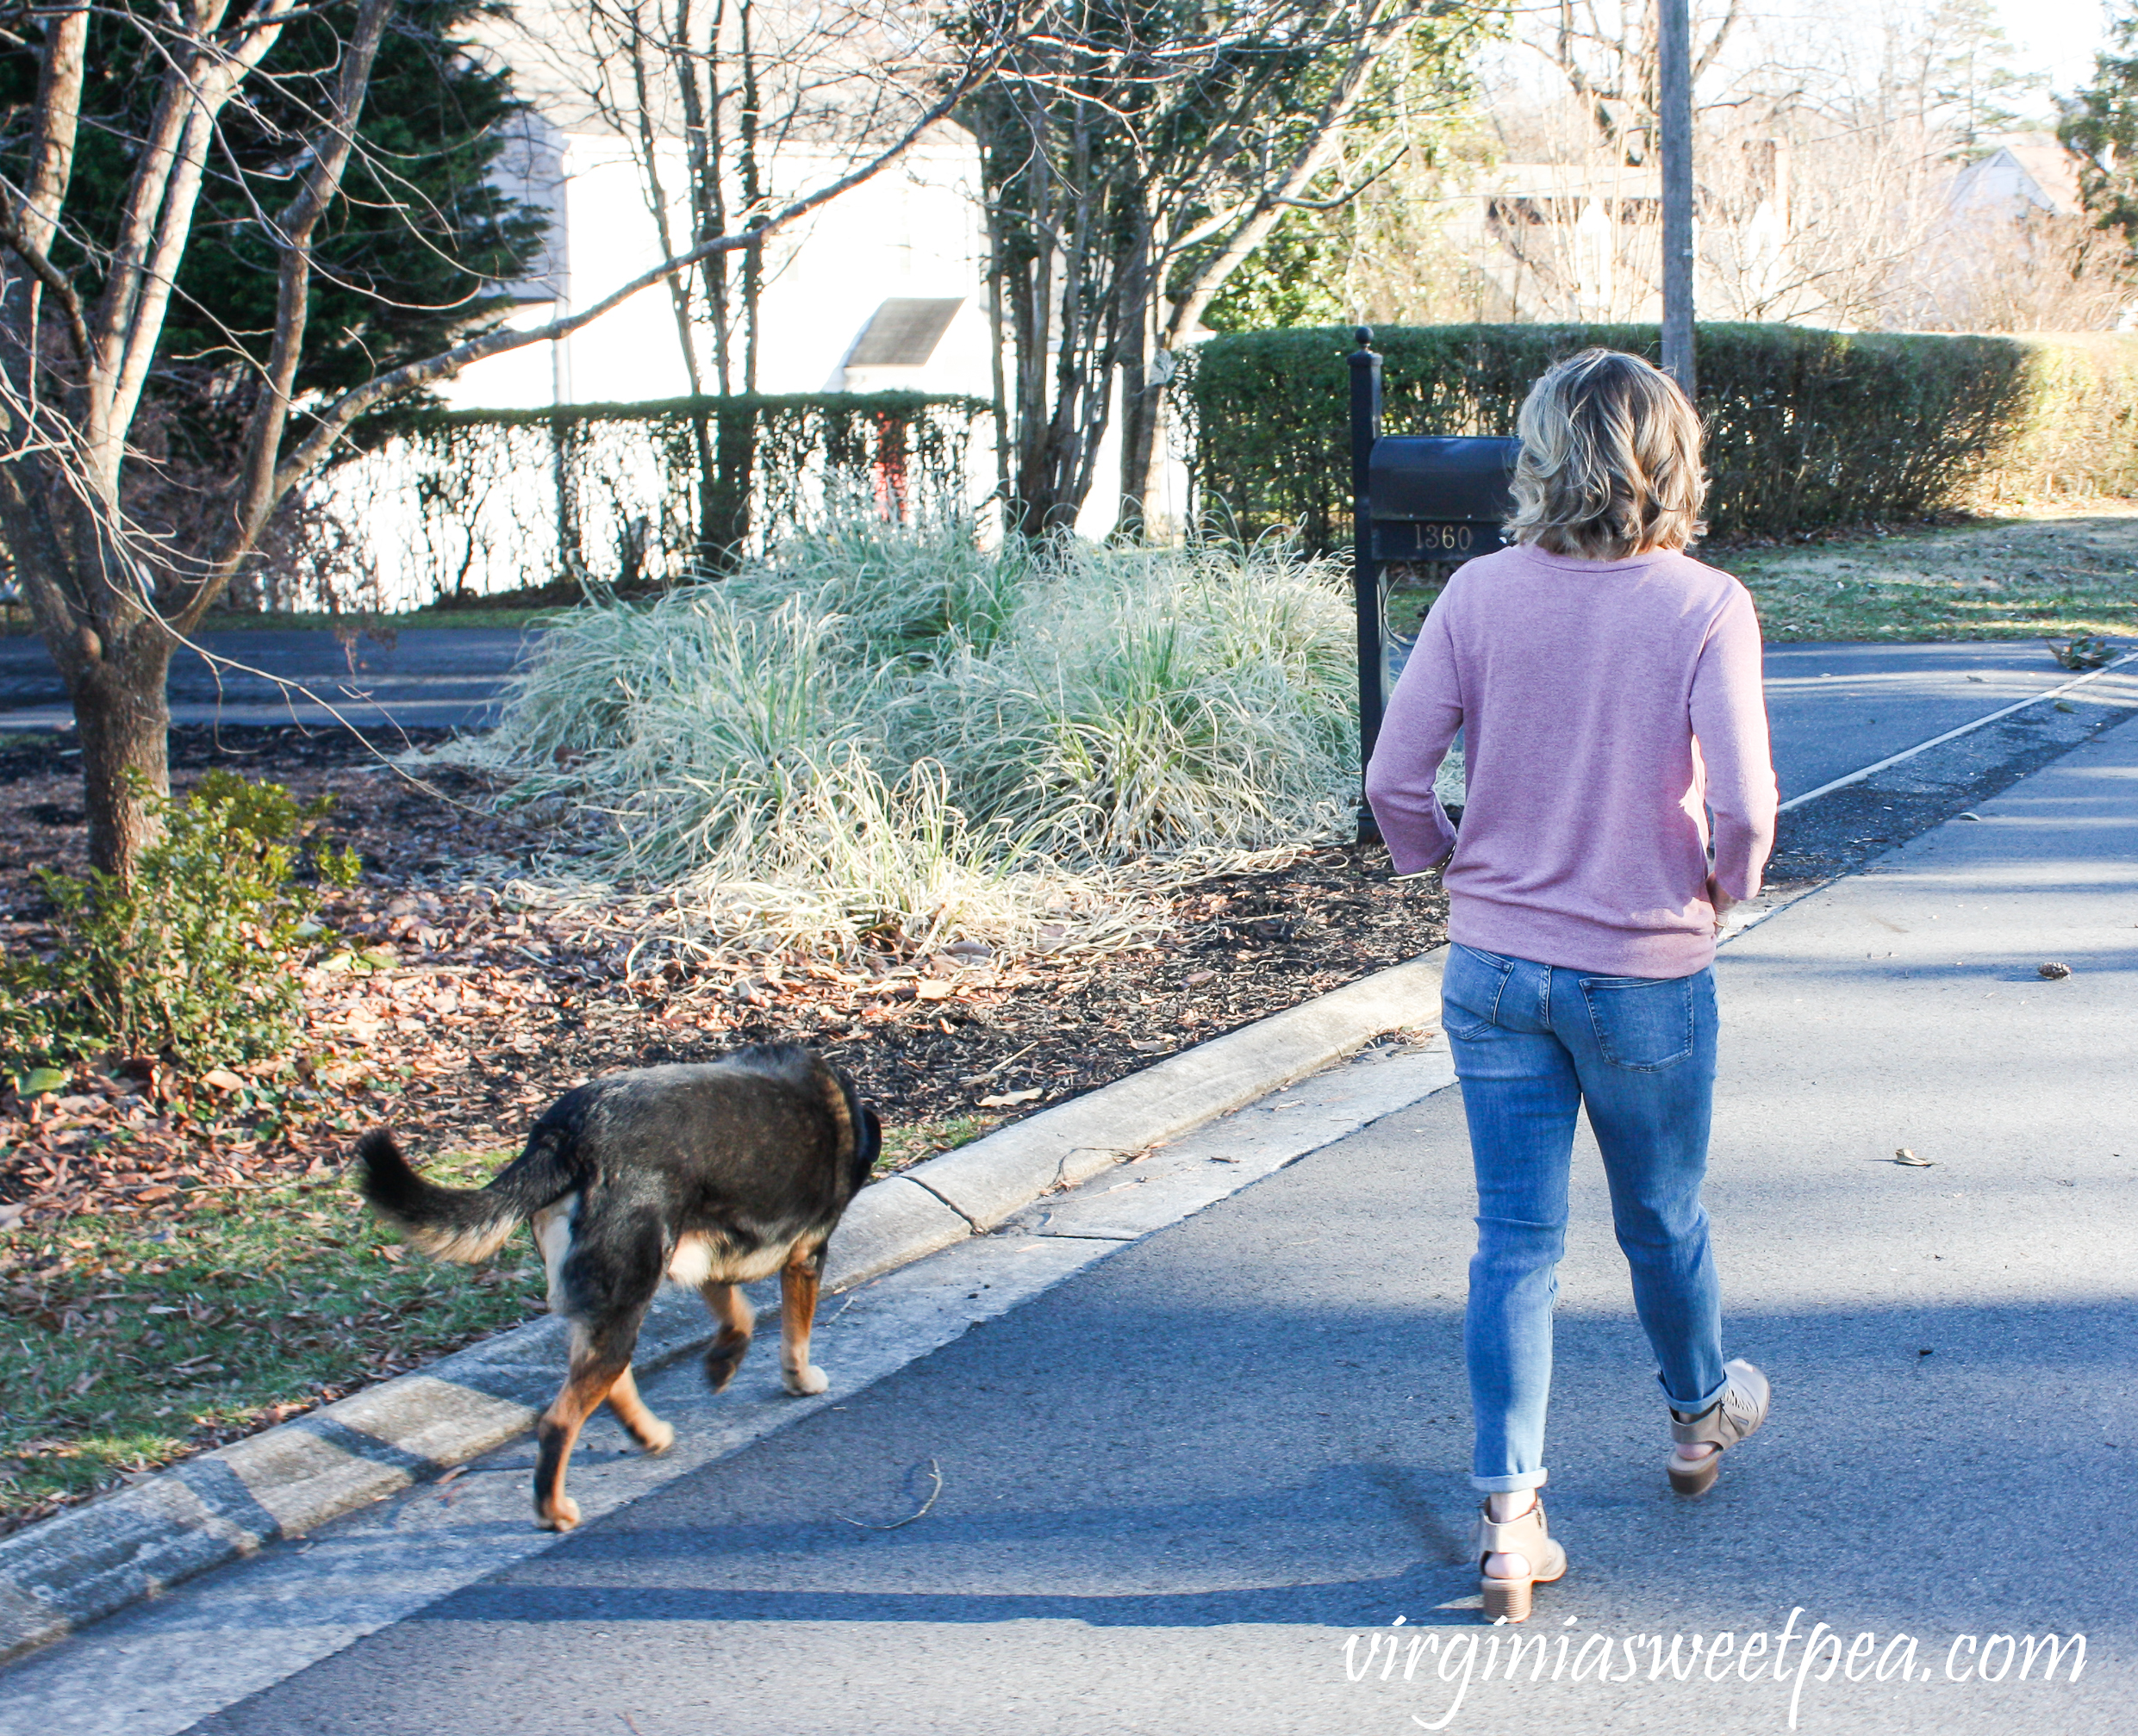 Stitch Fix Review for March 2019 - Warp + Weft Jenny Straight Leg Jean with Kaileigh Francine Tie Front Knit Top #stitchfix #stitchfixreview #stitchfix2019 #stitchfixspring #stitchfixjeans #shermanskulina